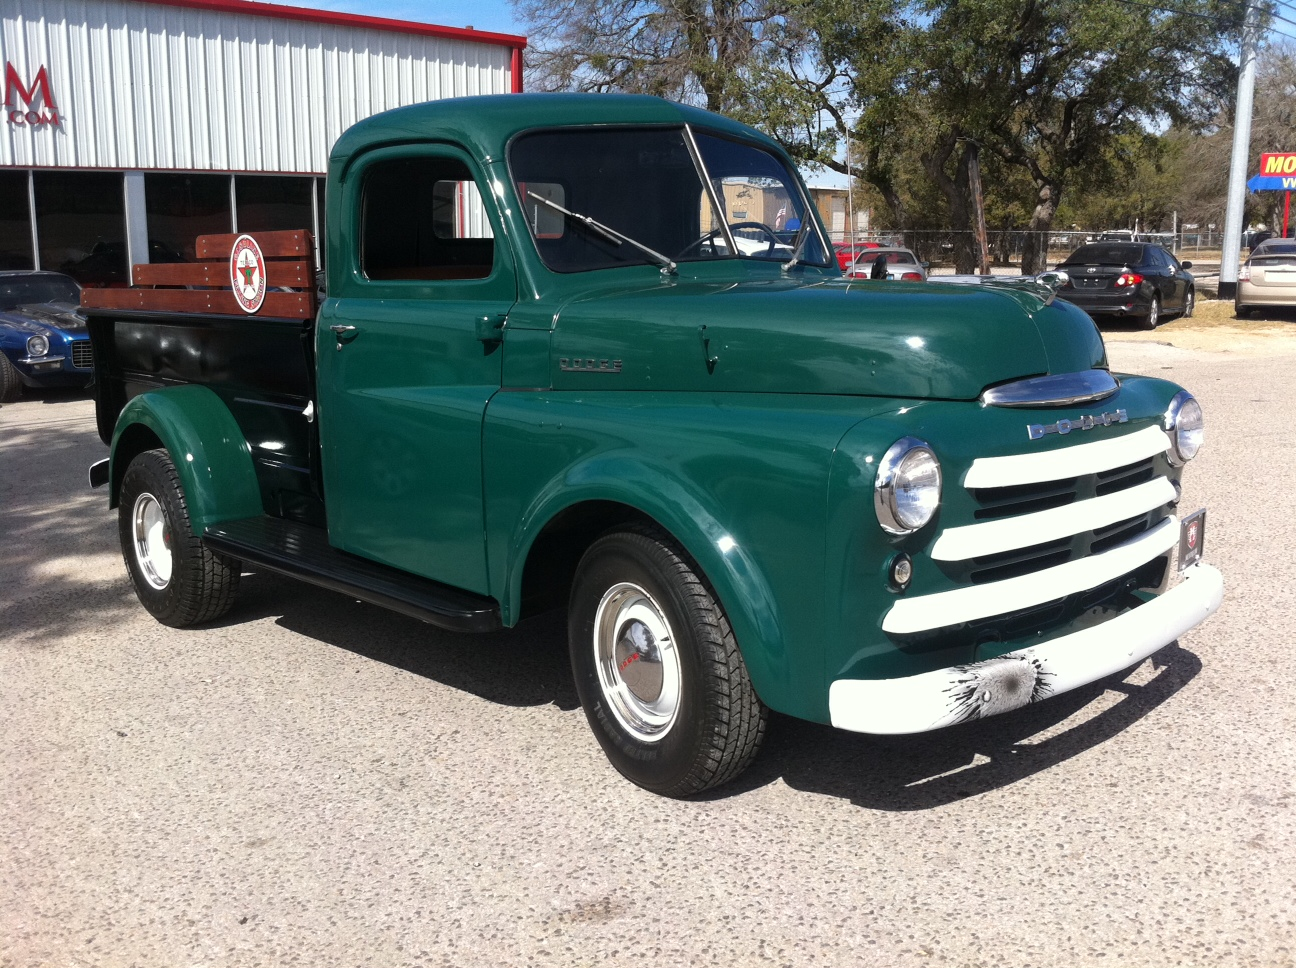 1950 dodge pickup for sale atx car pictures real pics from austin tx streets backyards. Black Bedroom Furniture Sets. Home Design Ideas